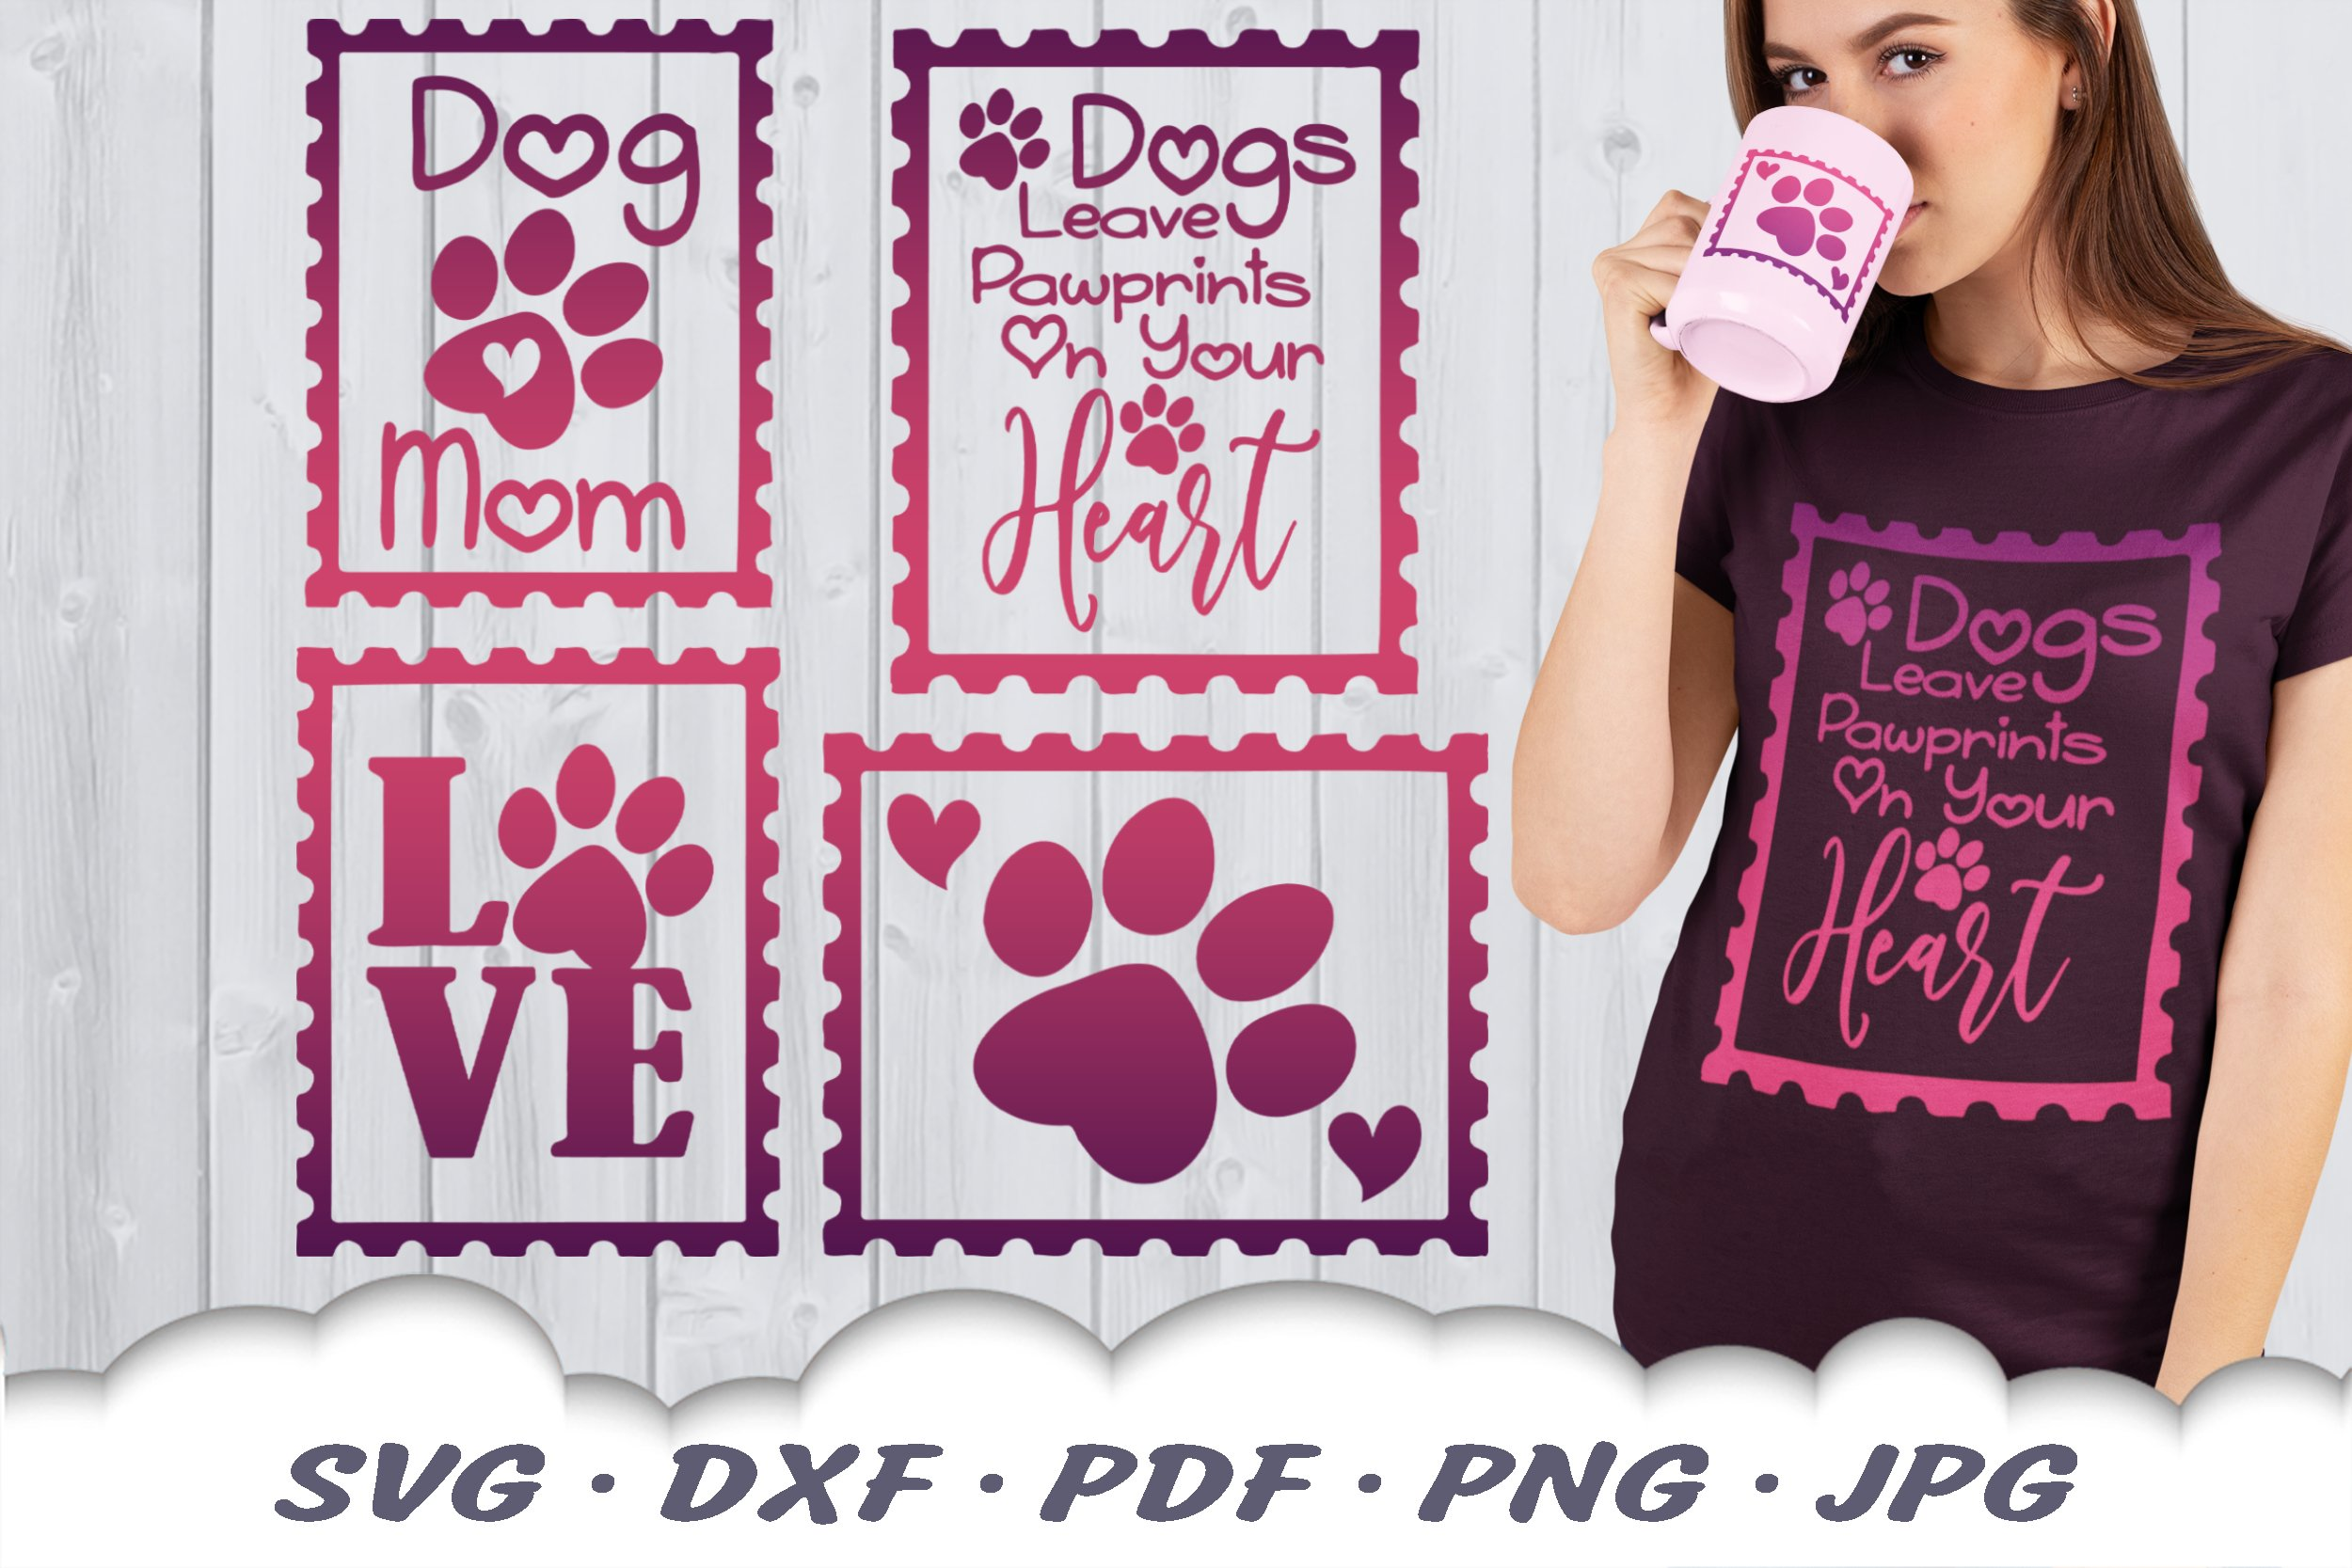 Dog Mom Postage Stamps SVG Bundle DXF Cut Files example image 1